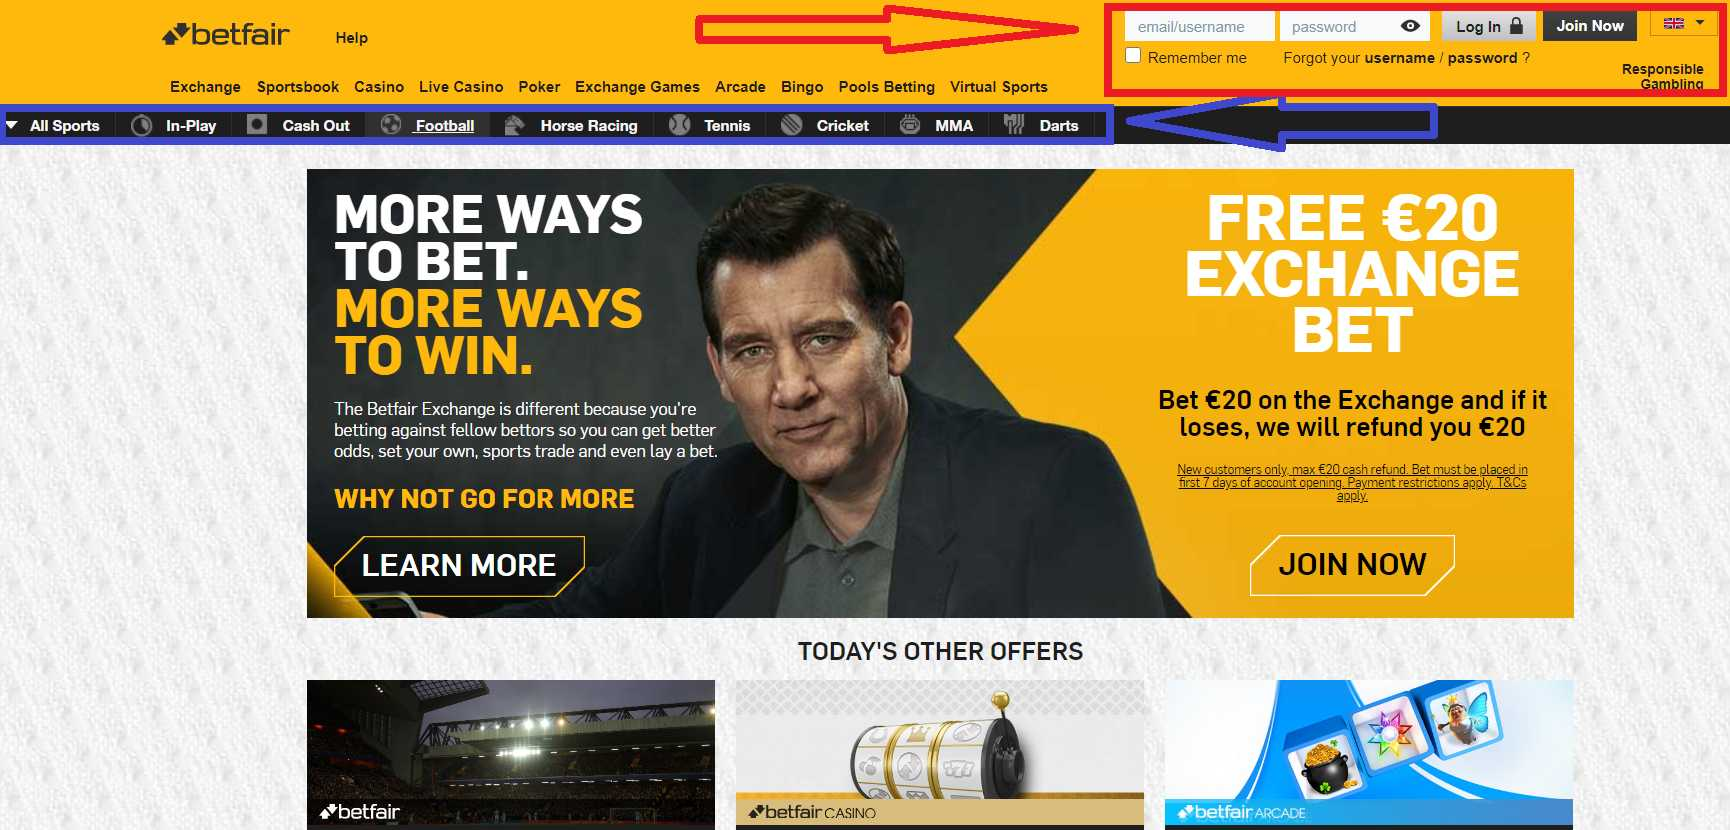 List of Betfair Sign Up Offers: Choose the Best